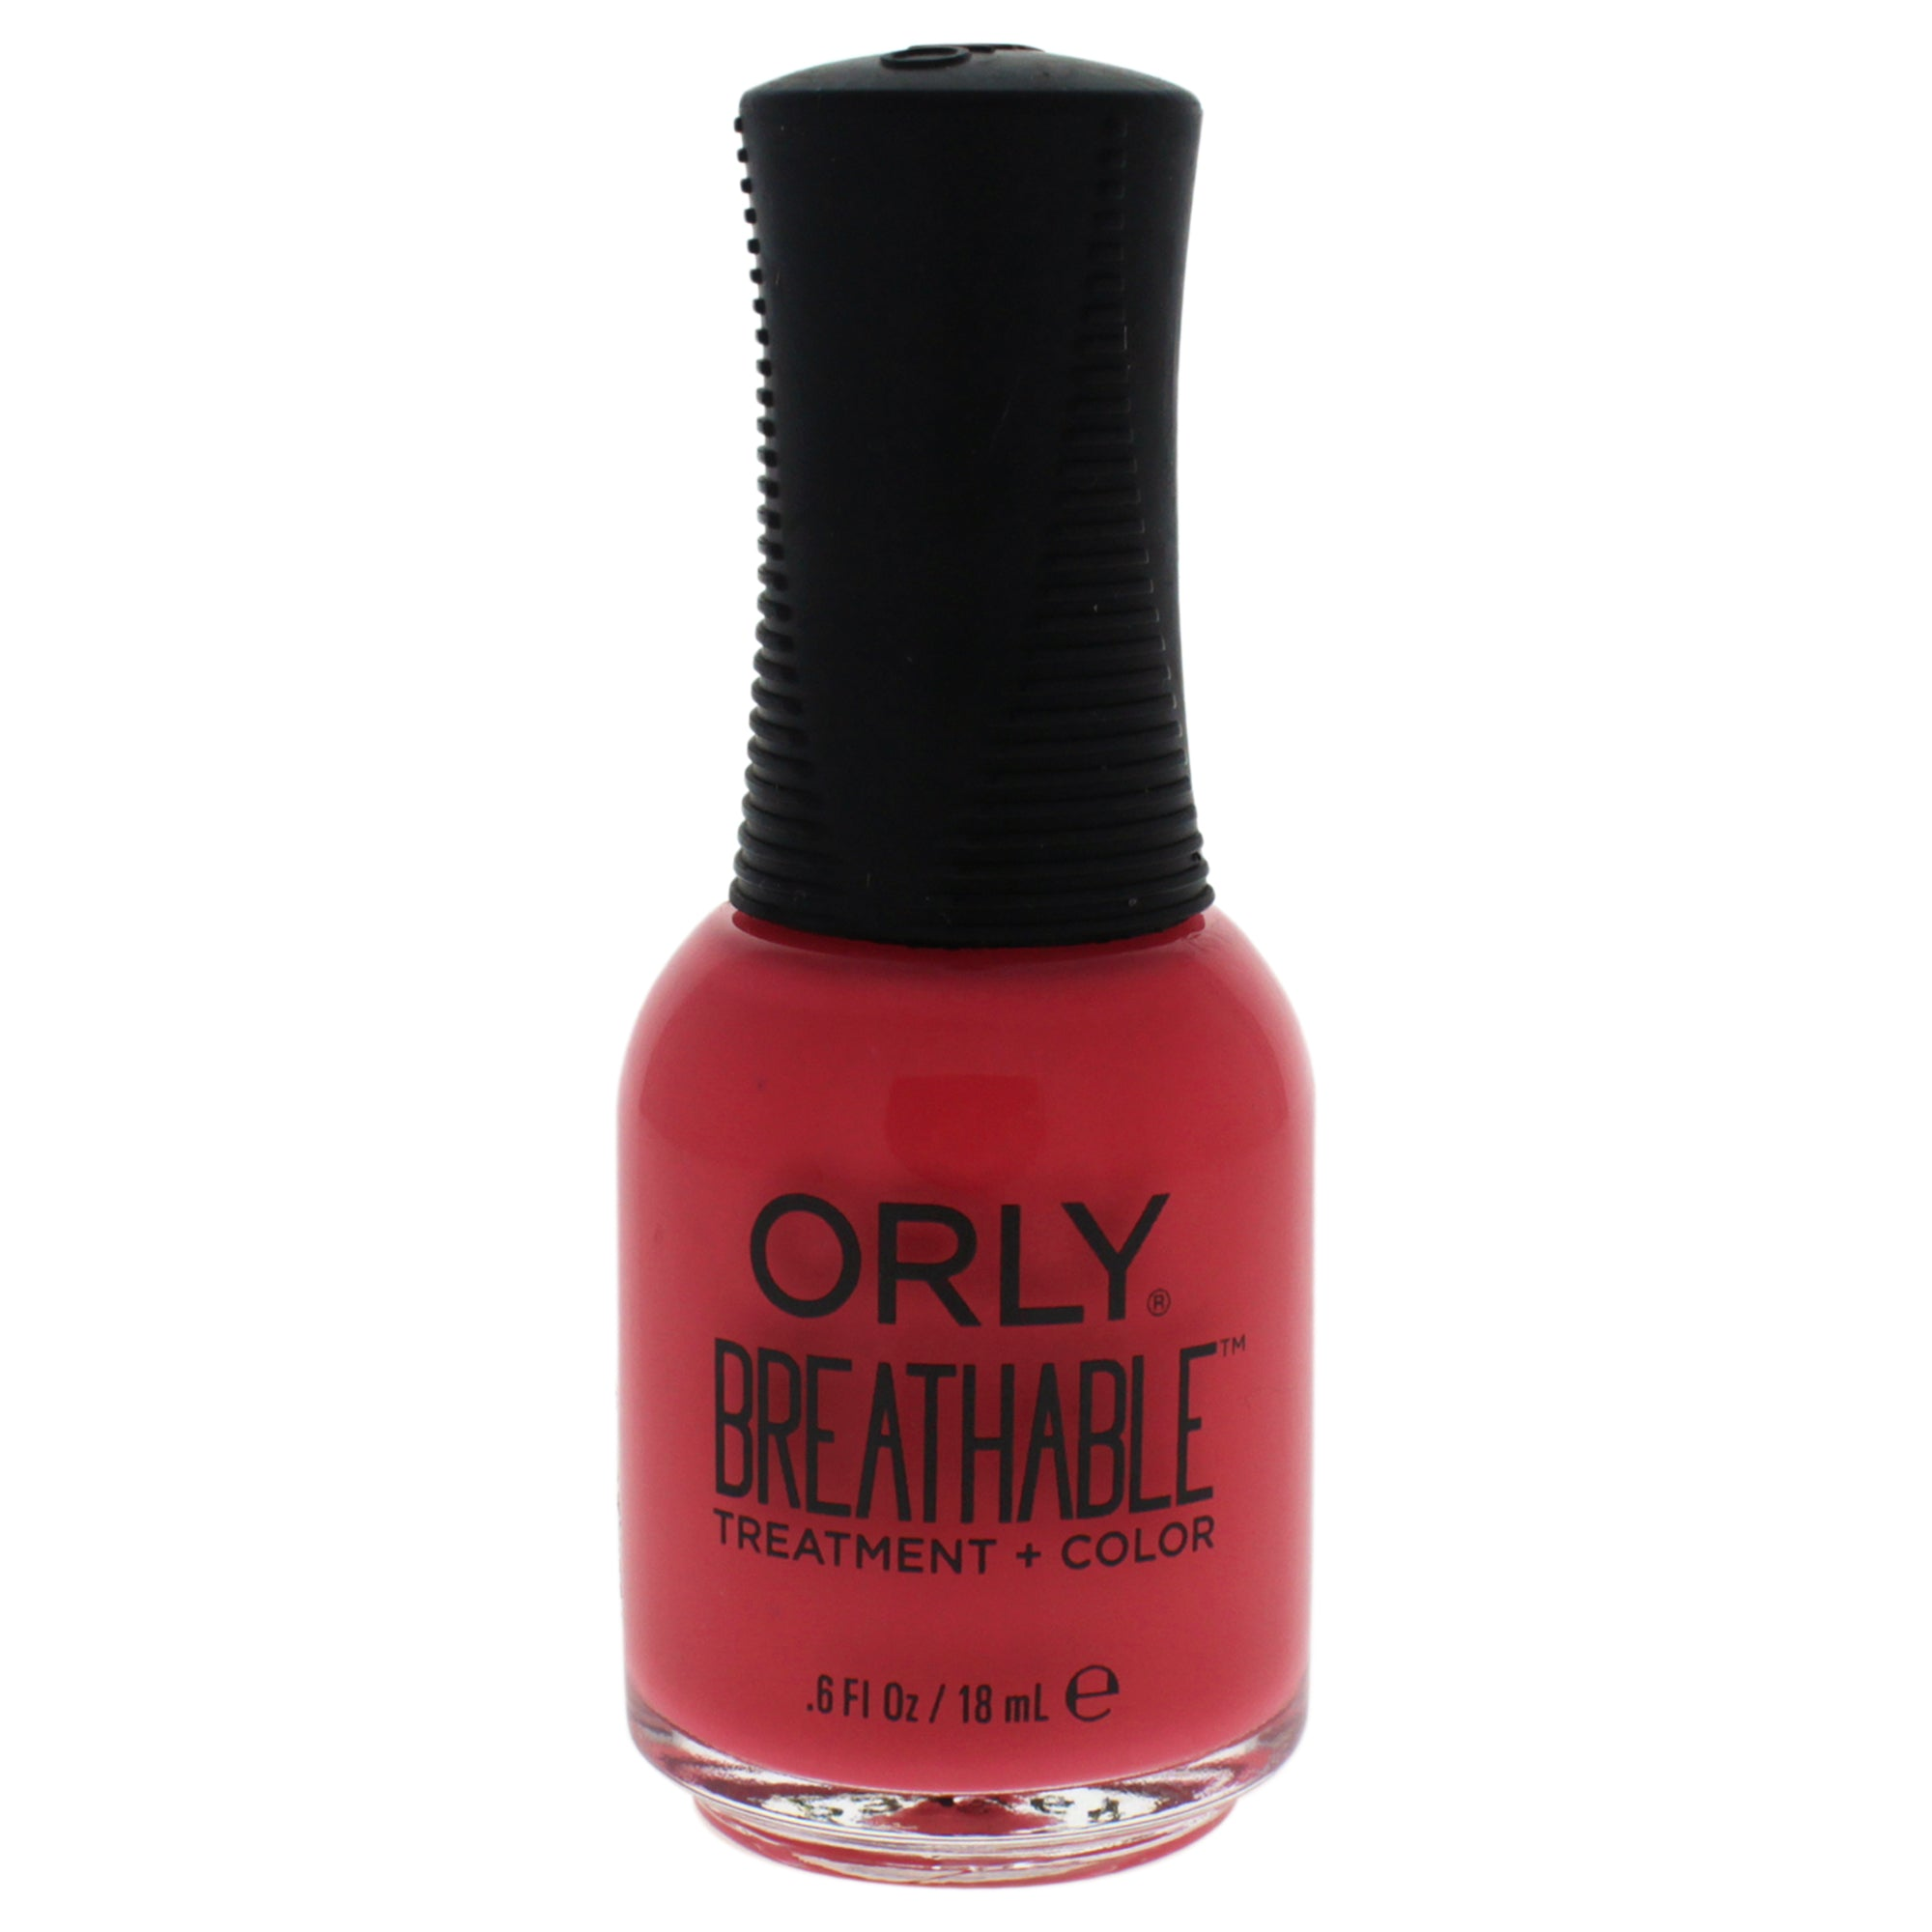 Orly Breathable Treatment + Color # 20919